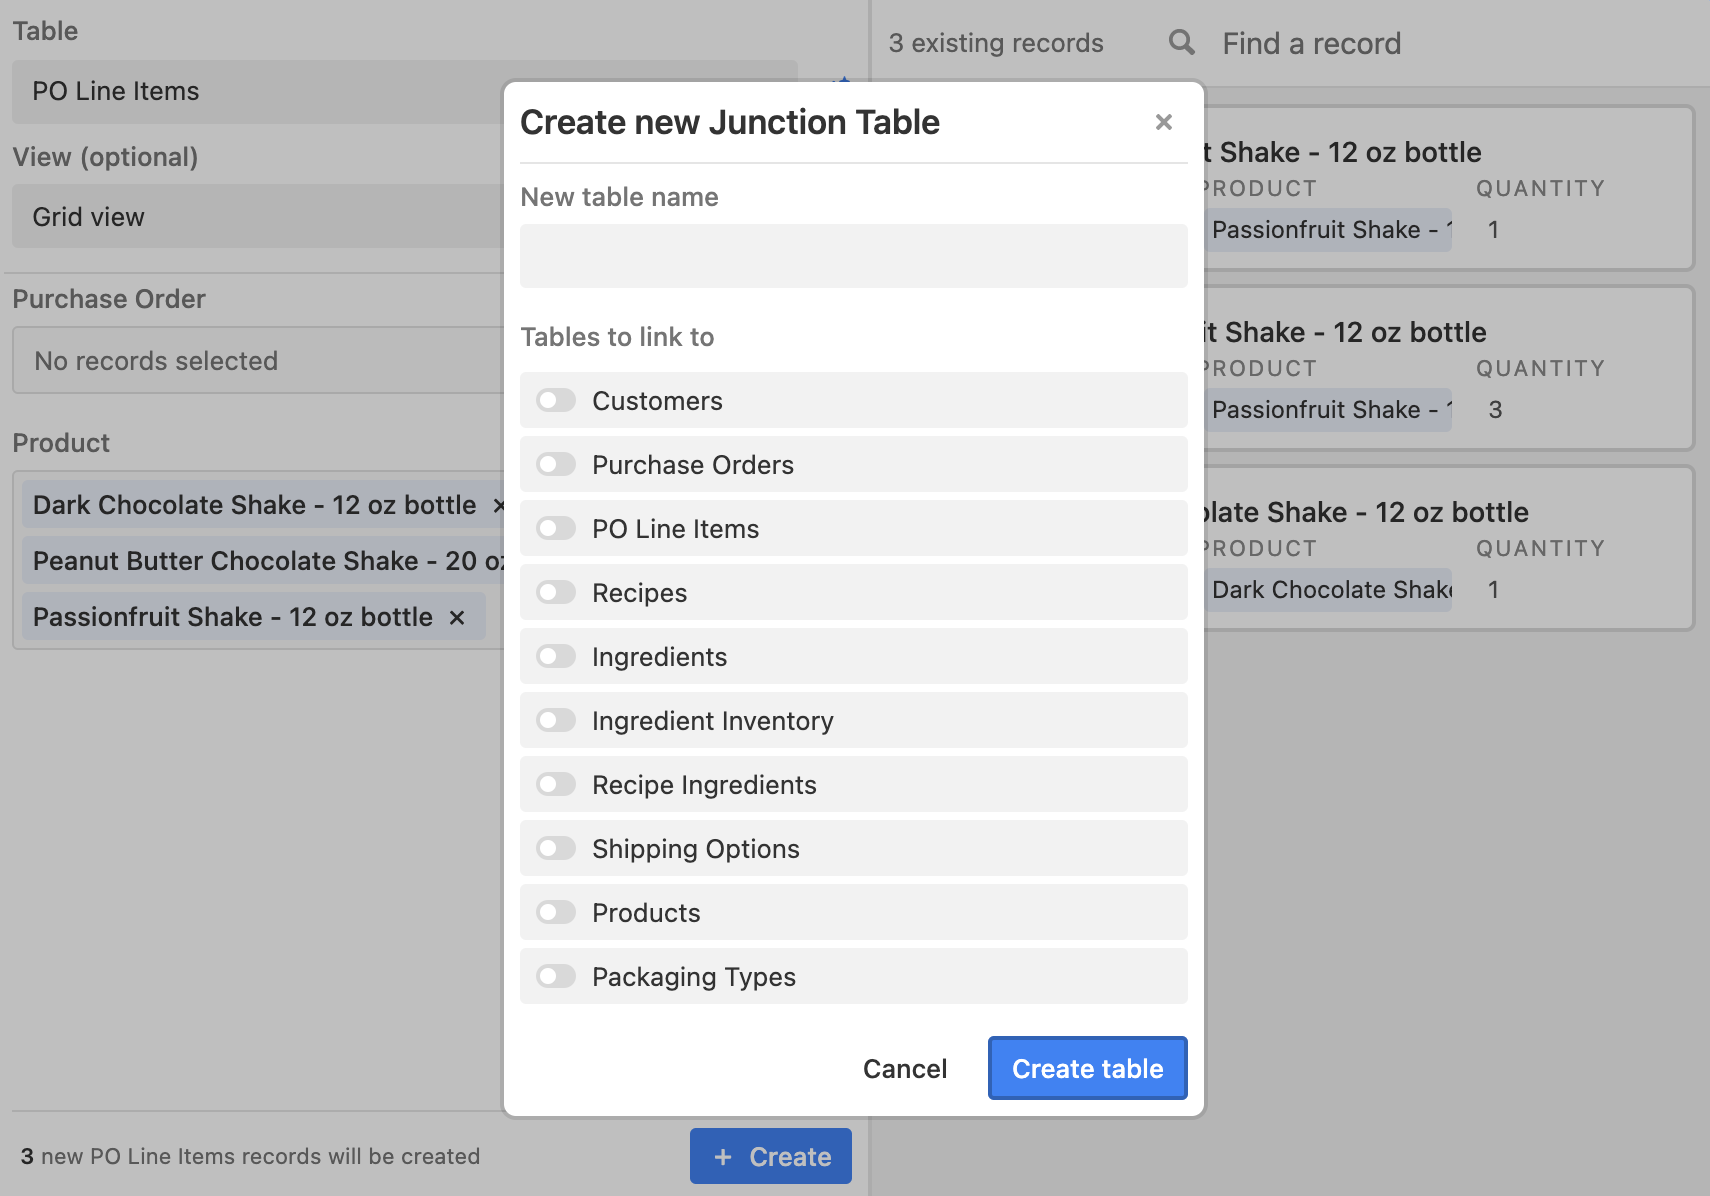 Create Junction Table dialog